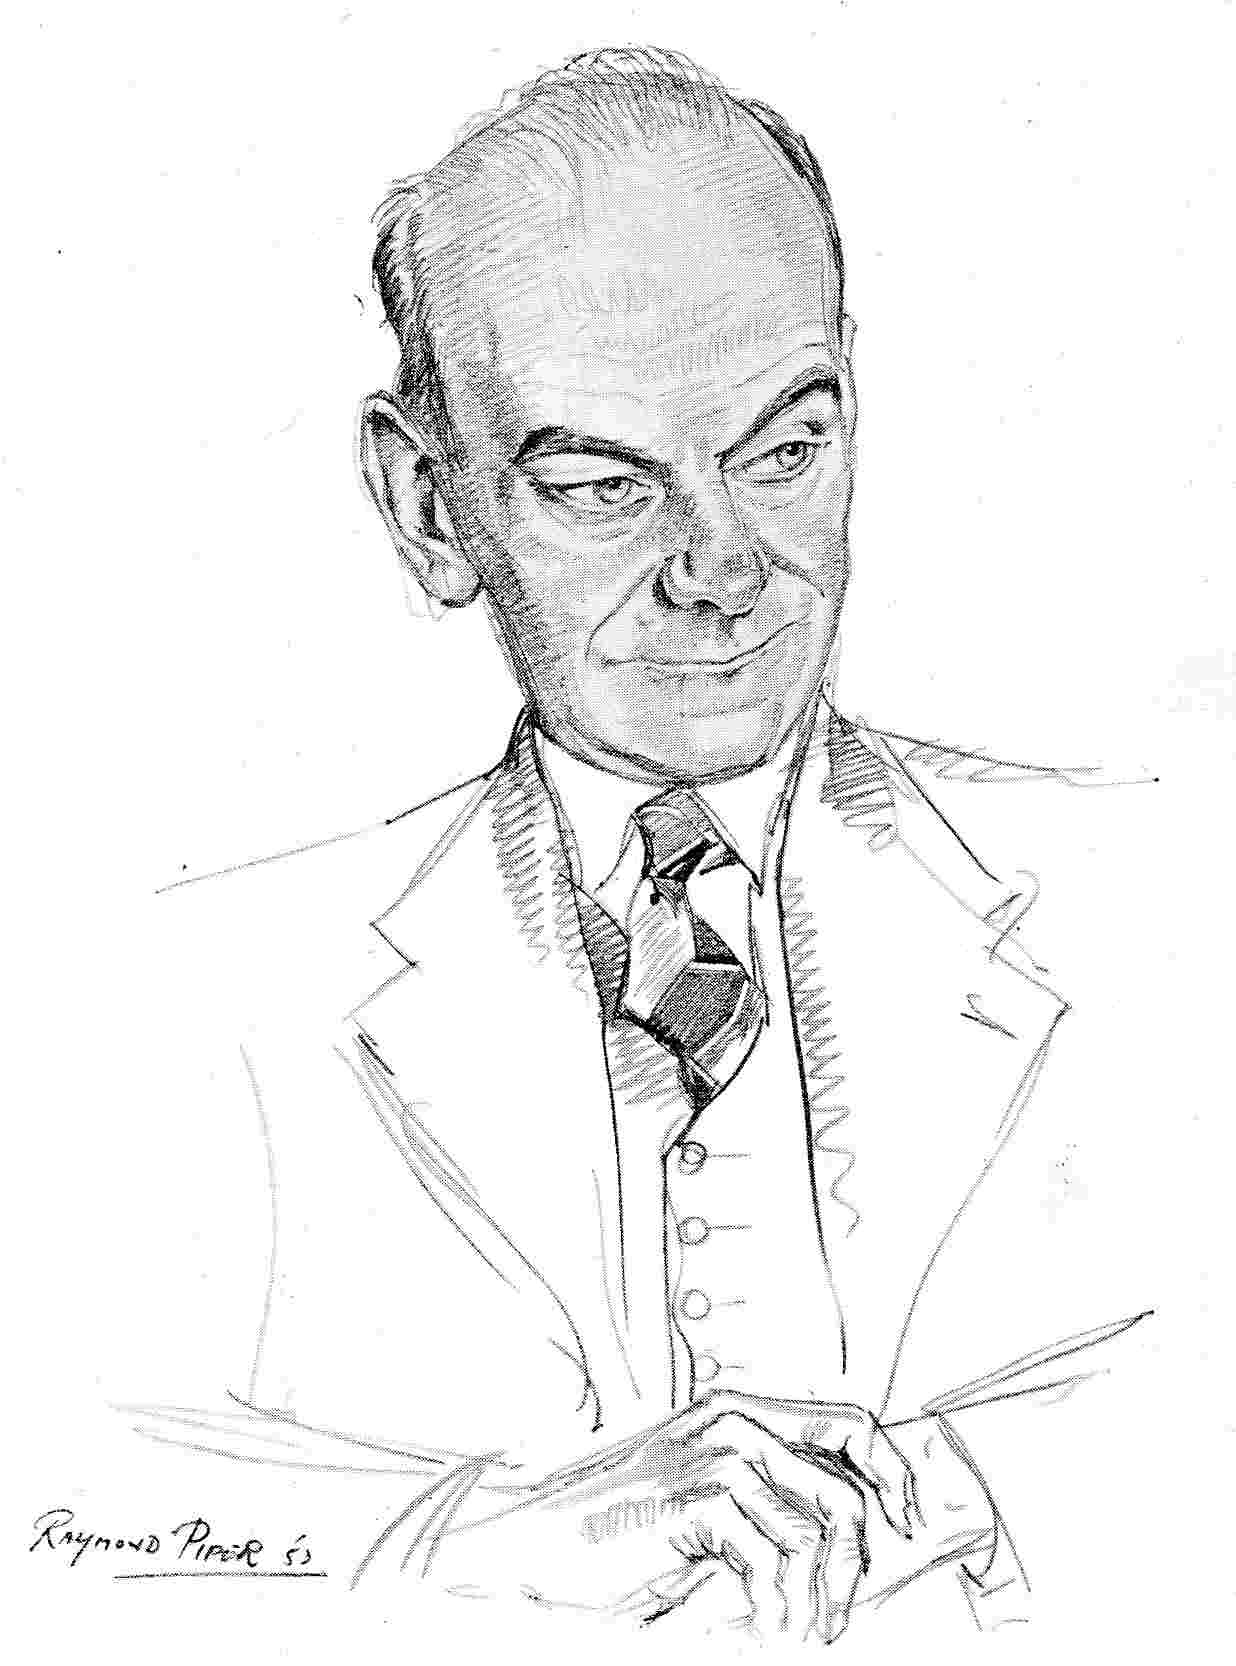 Raymond Piper's sketch of David Curry, 1953